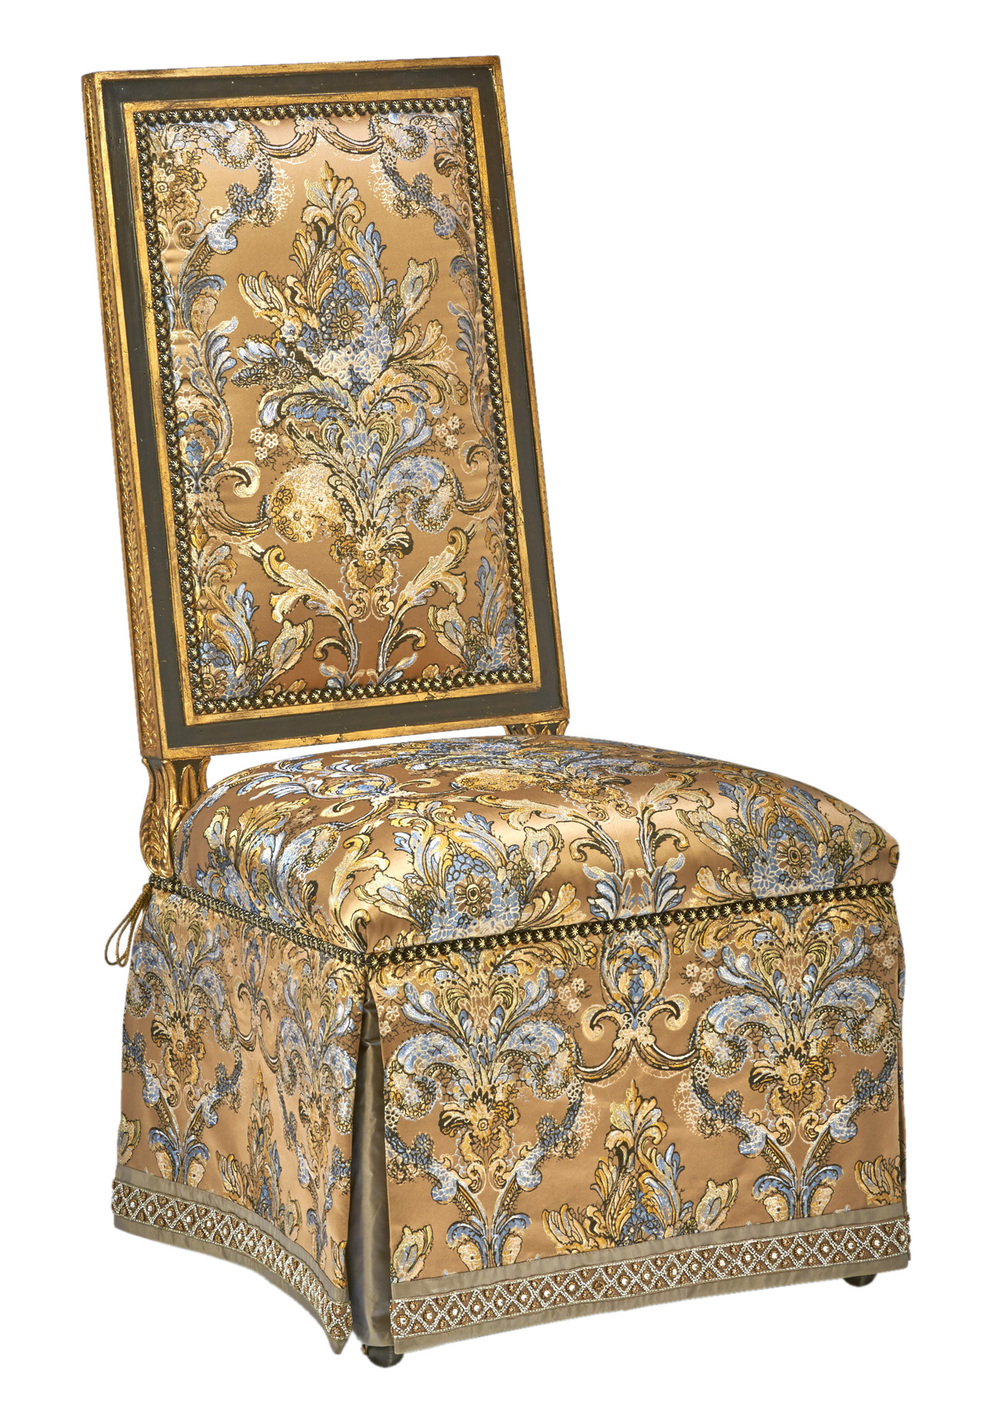 MARGE CARSON, INC. - Grand Traditions Side Chair